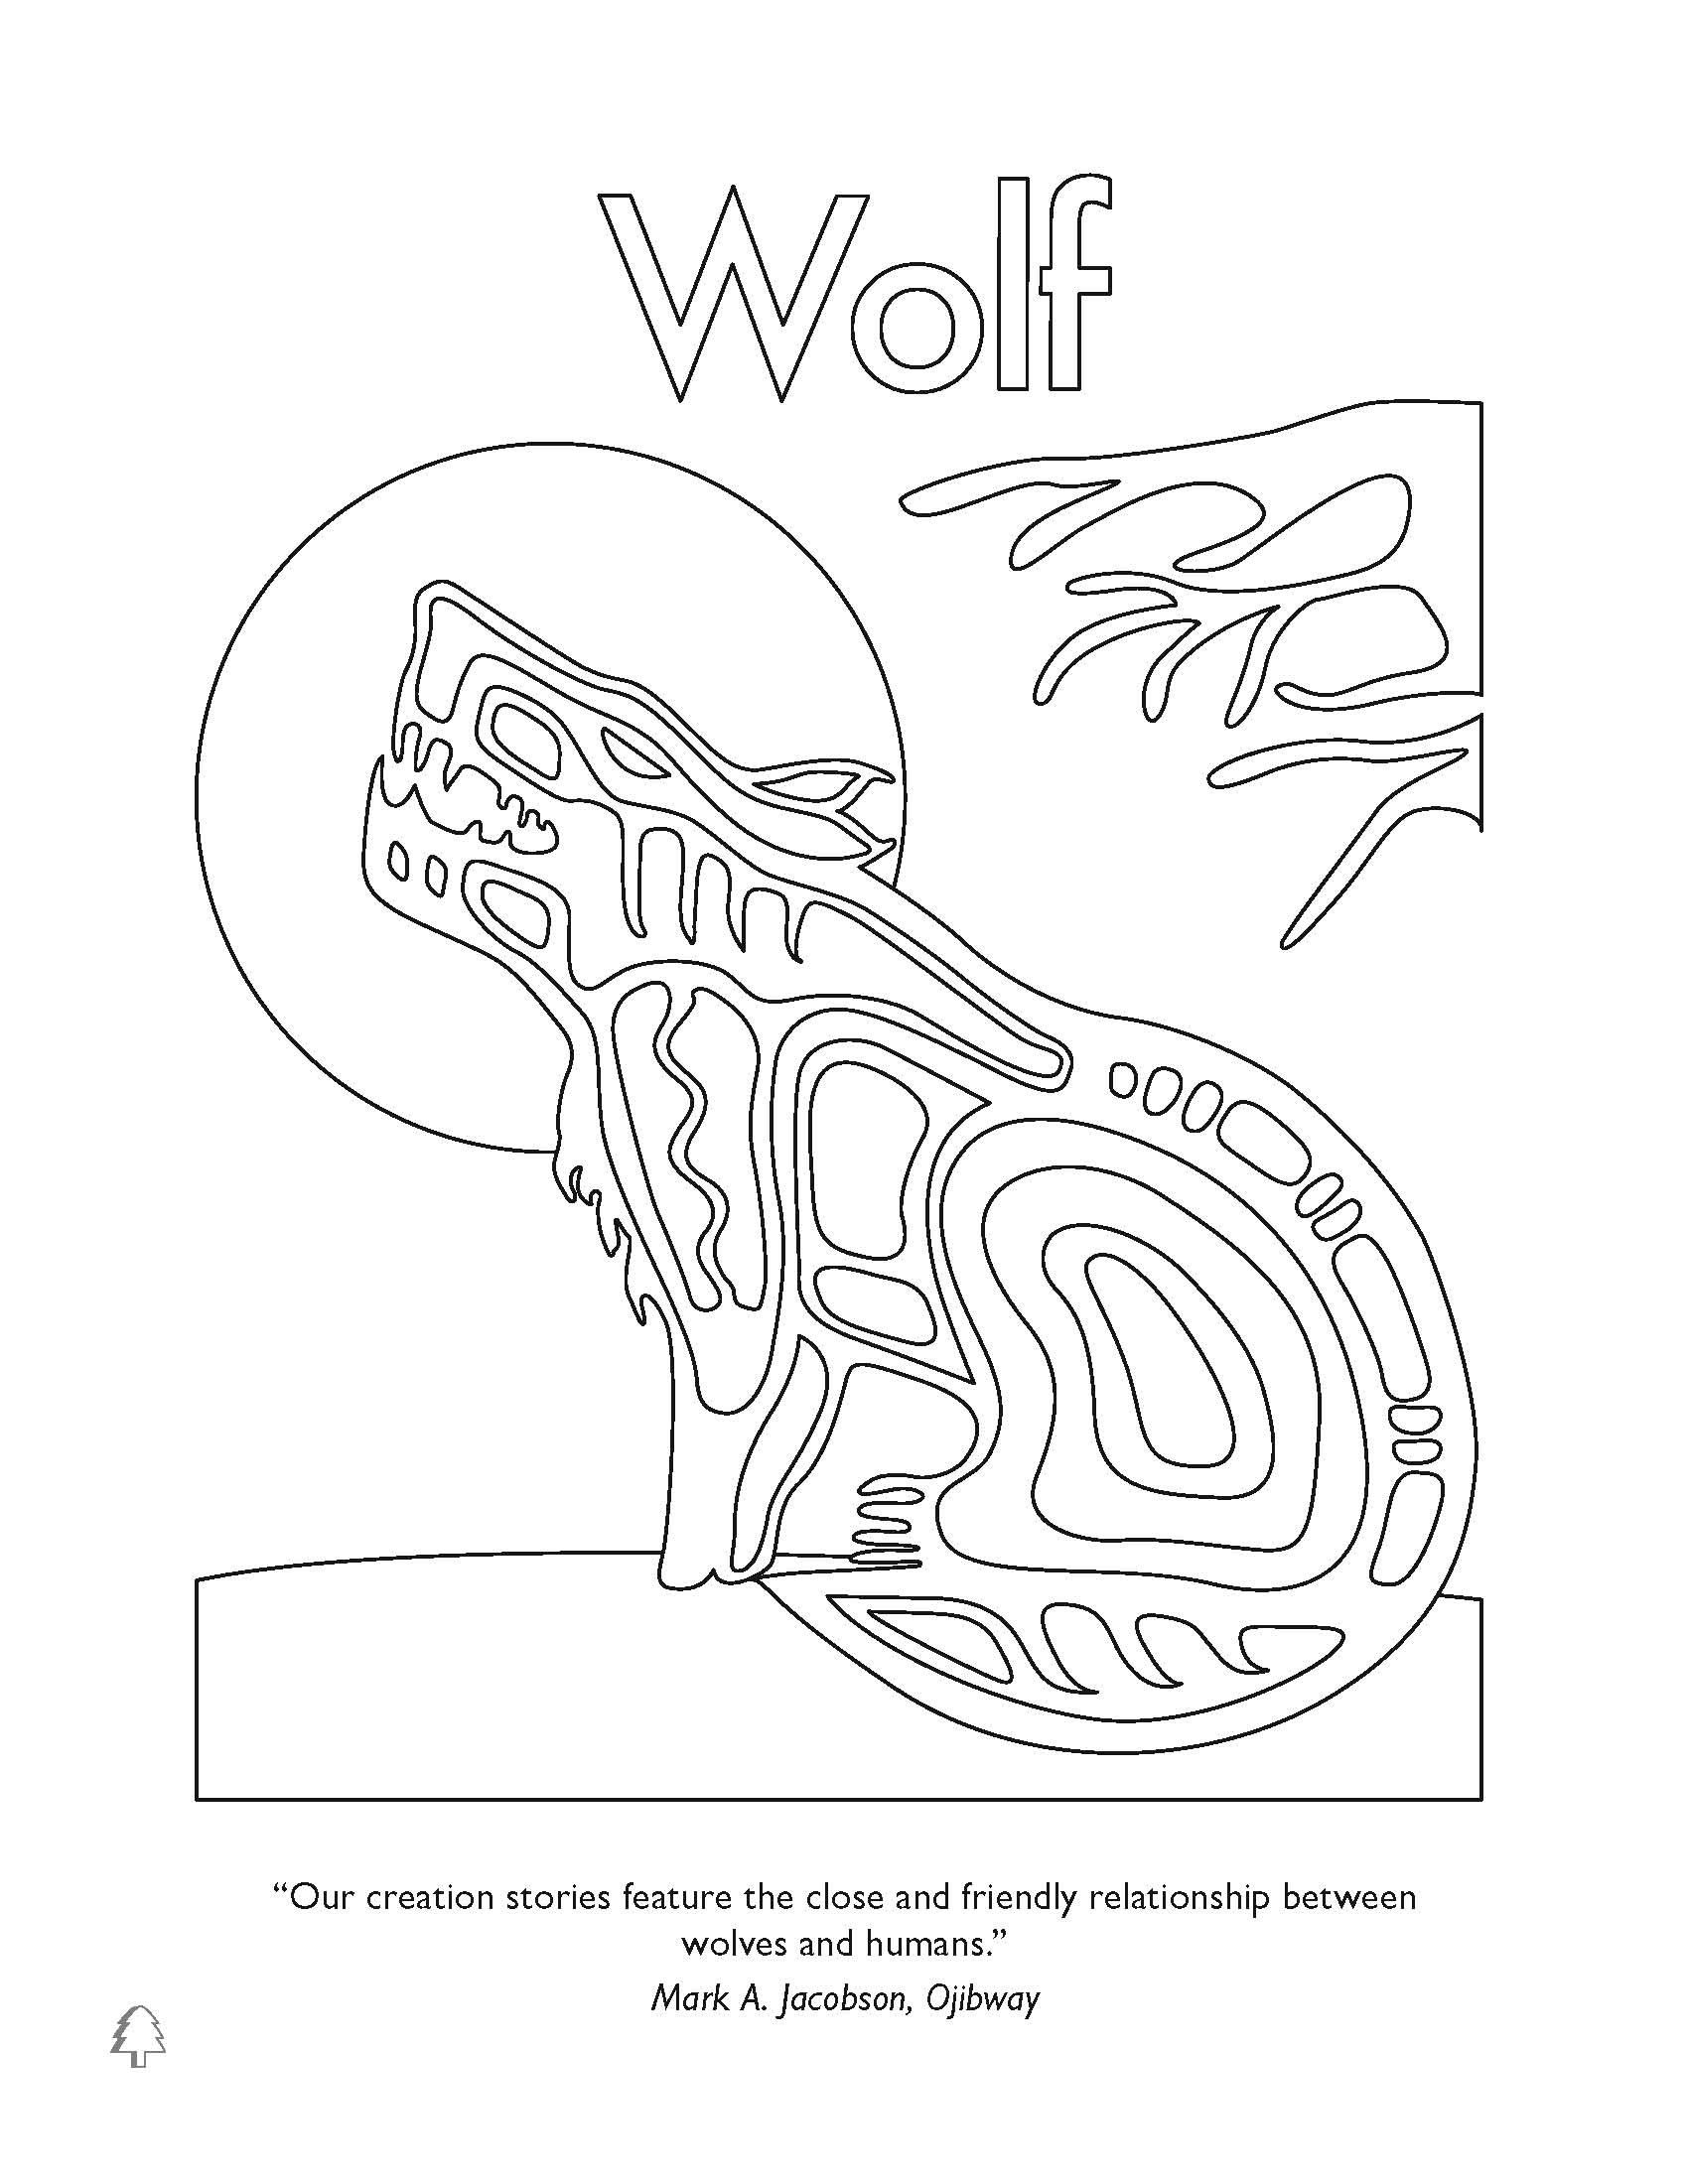 American Symbols Coloring Pages At Getcolorings